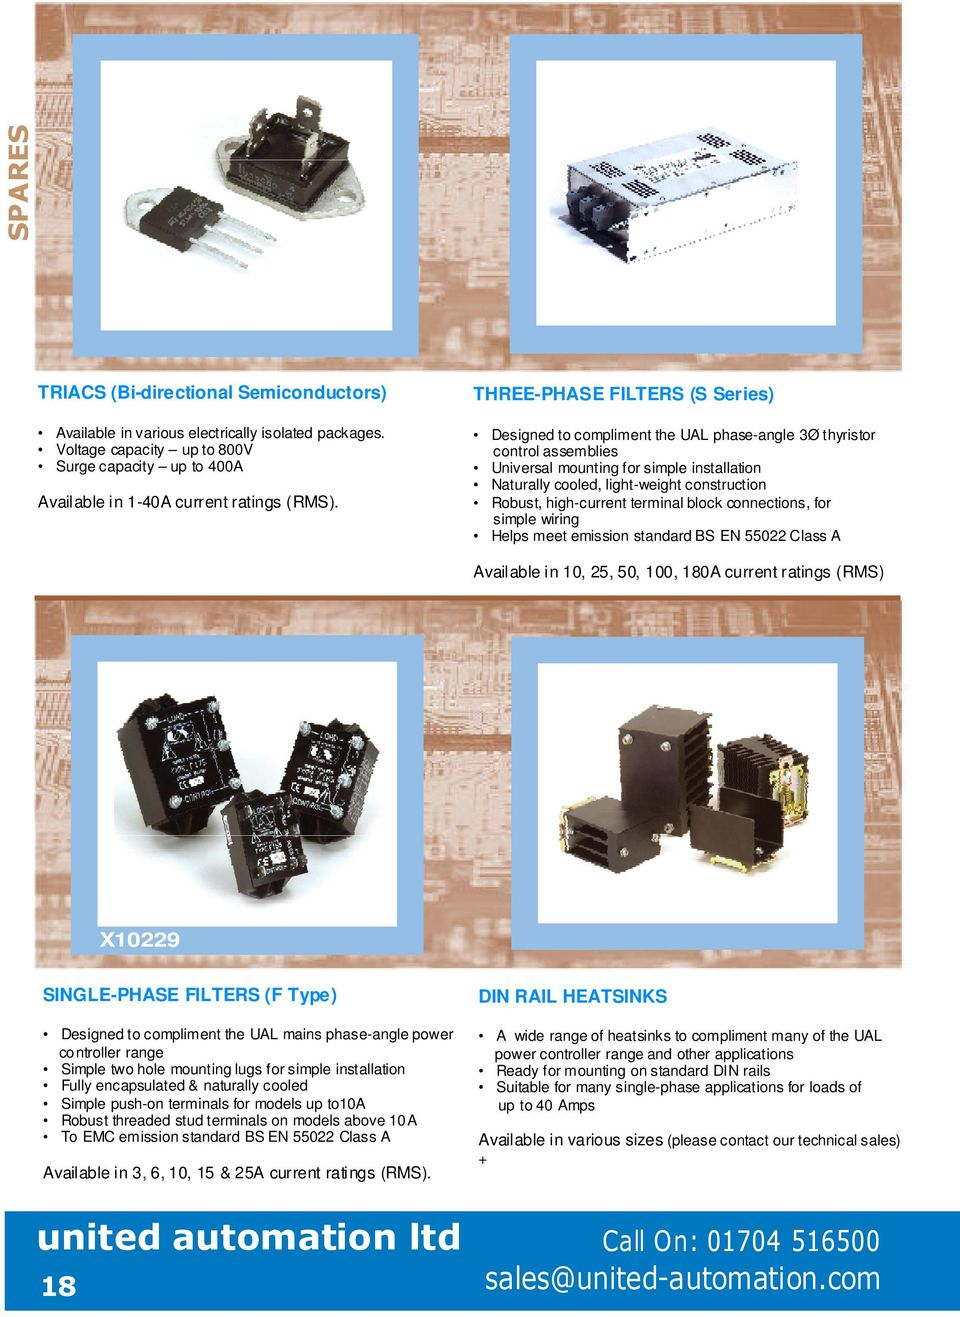 Robust, high-current terminal block connections, for simple wiring Helps meet emission standard BS EN 55022 Class A Available in 10, 25, 50, 100, 180A current ratings (RMS) X10229 SINGLE-PHASE